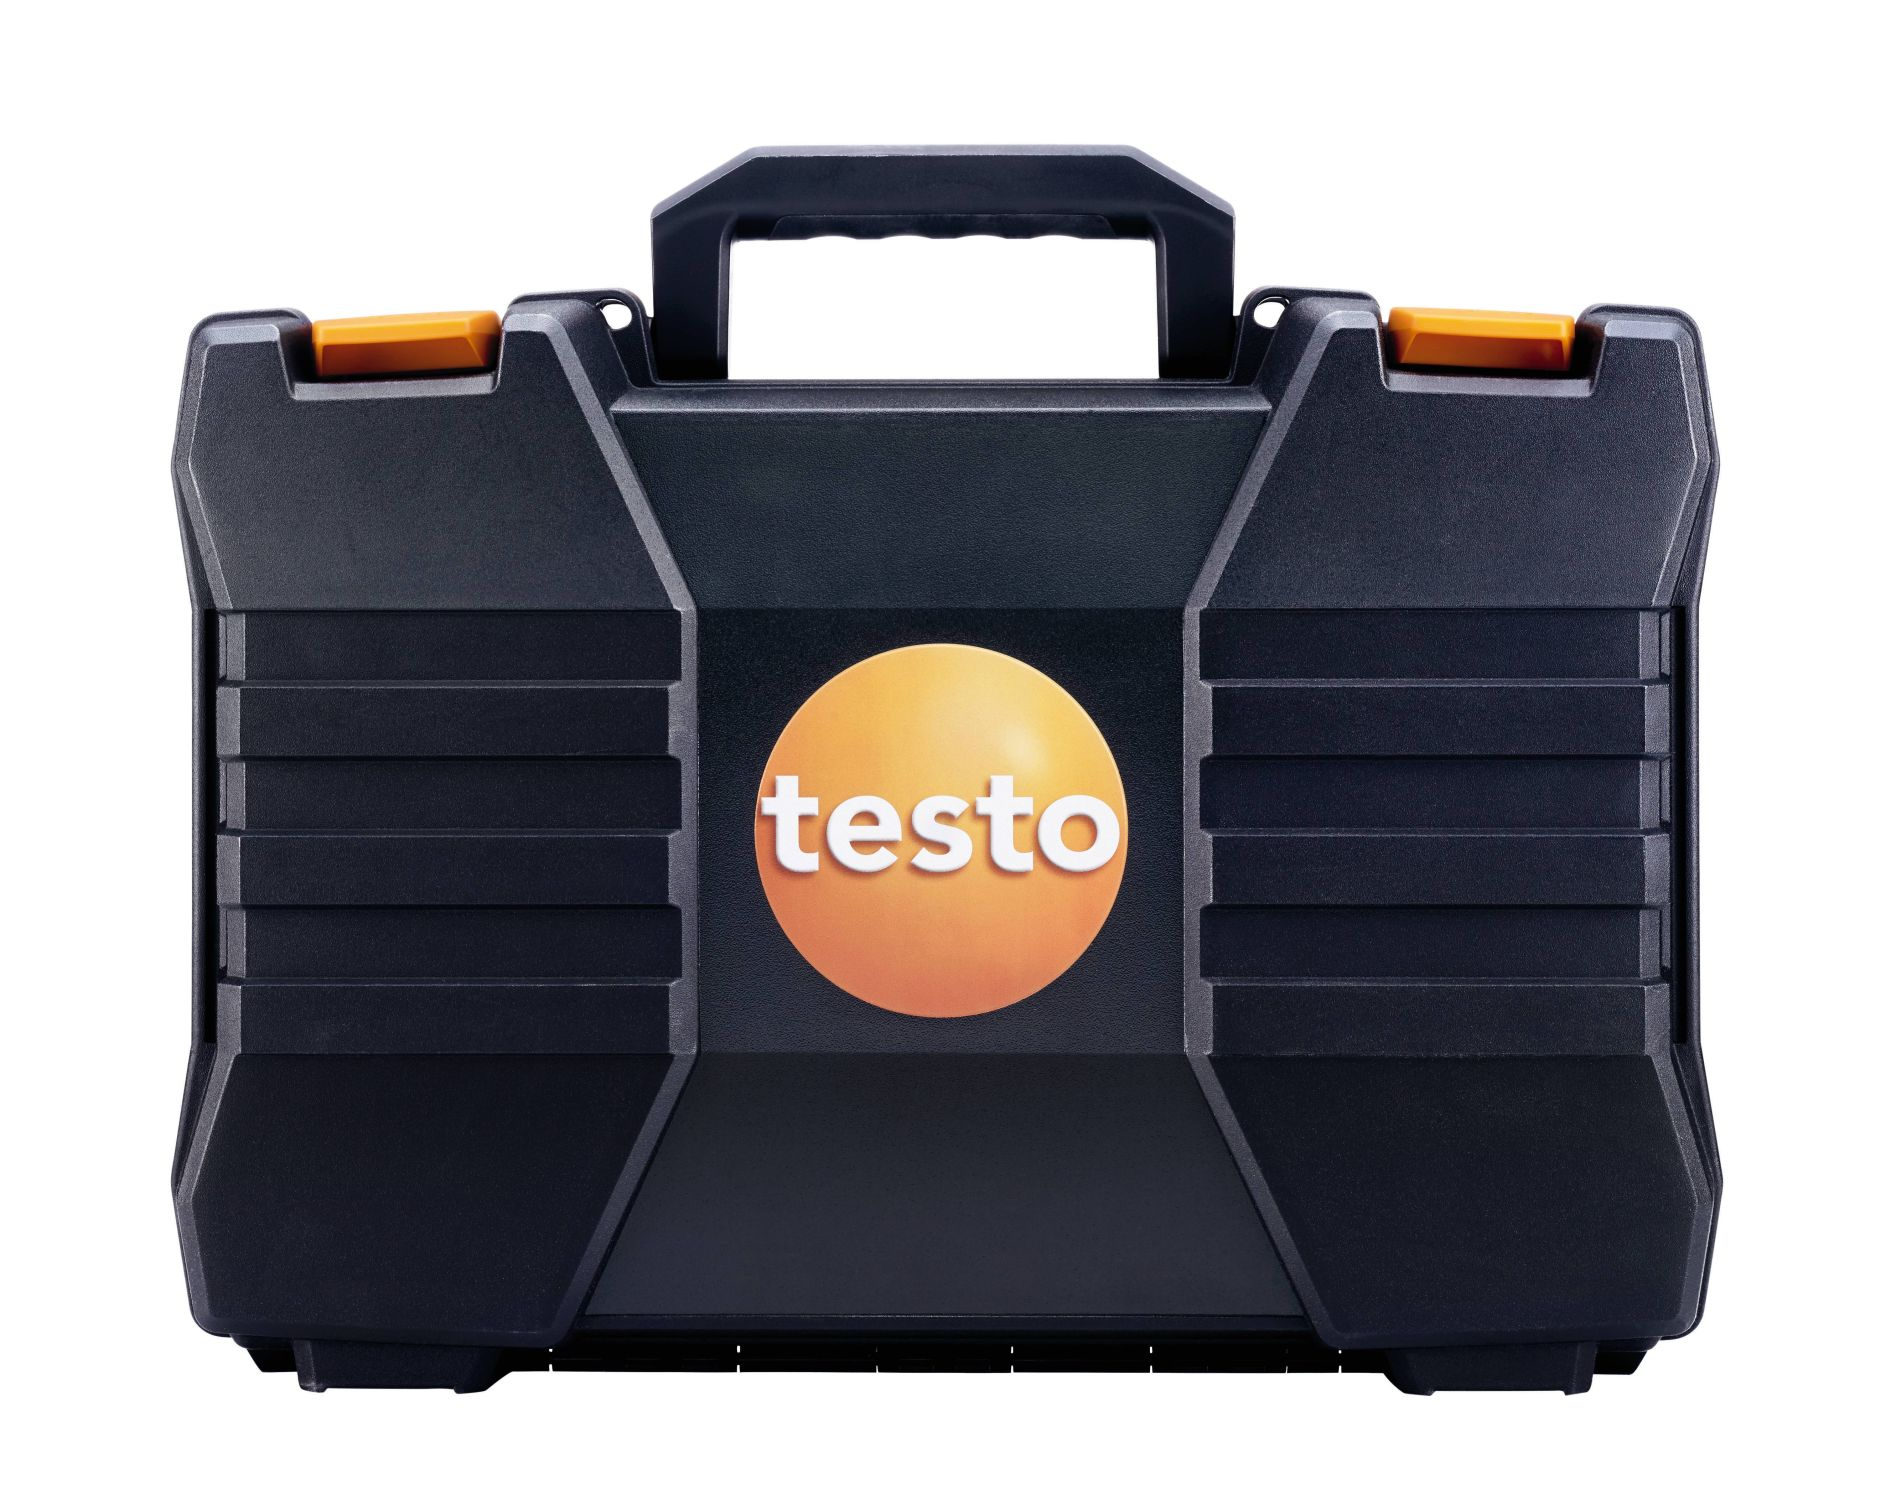 Testo 440 Transport case for air flow measurement